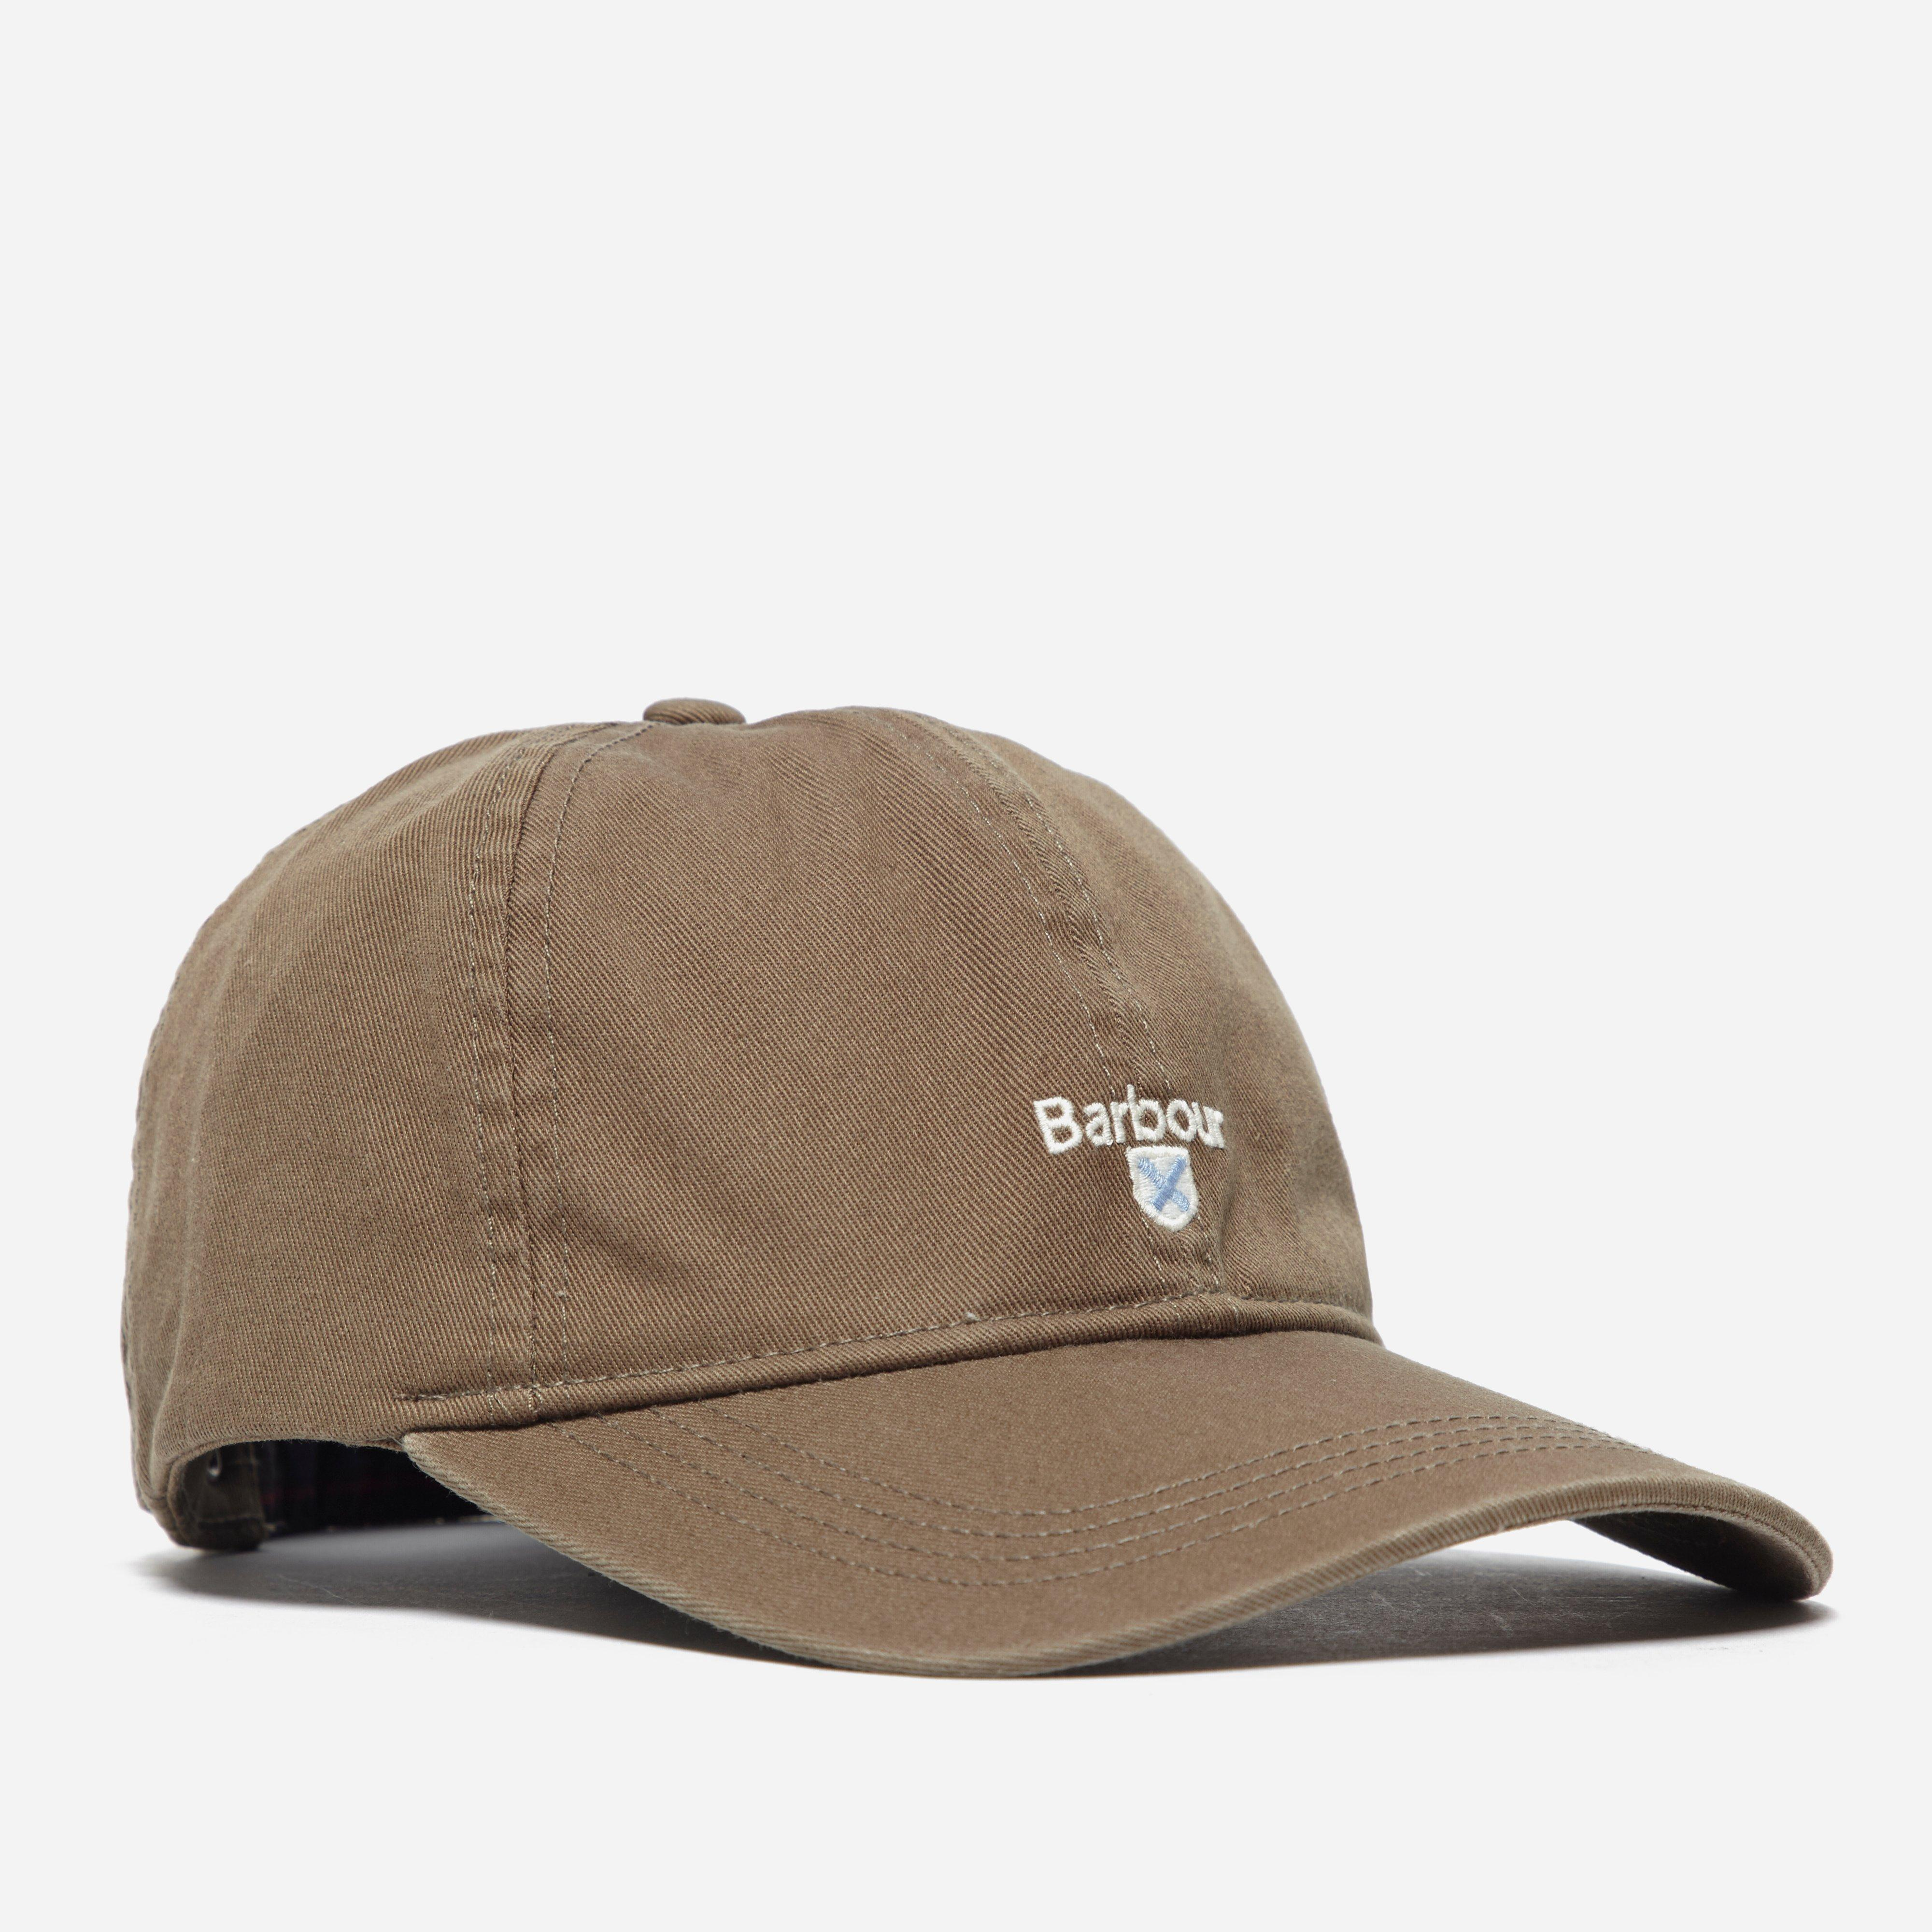 Barbour Cascade Sports Cap